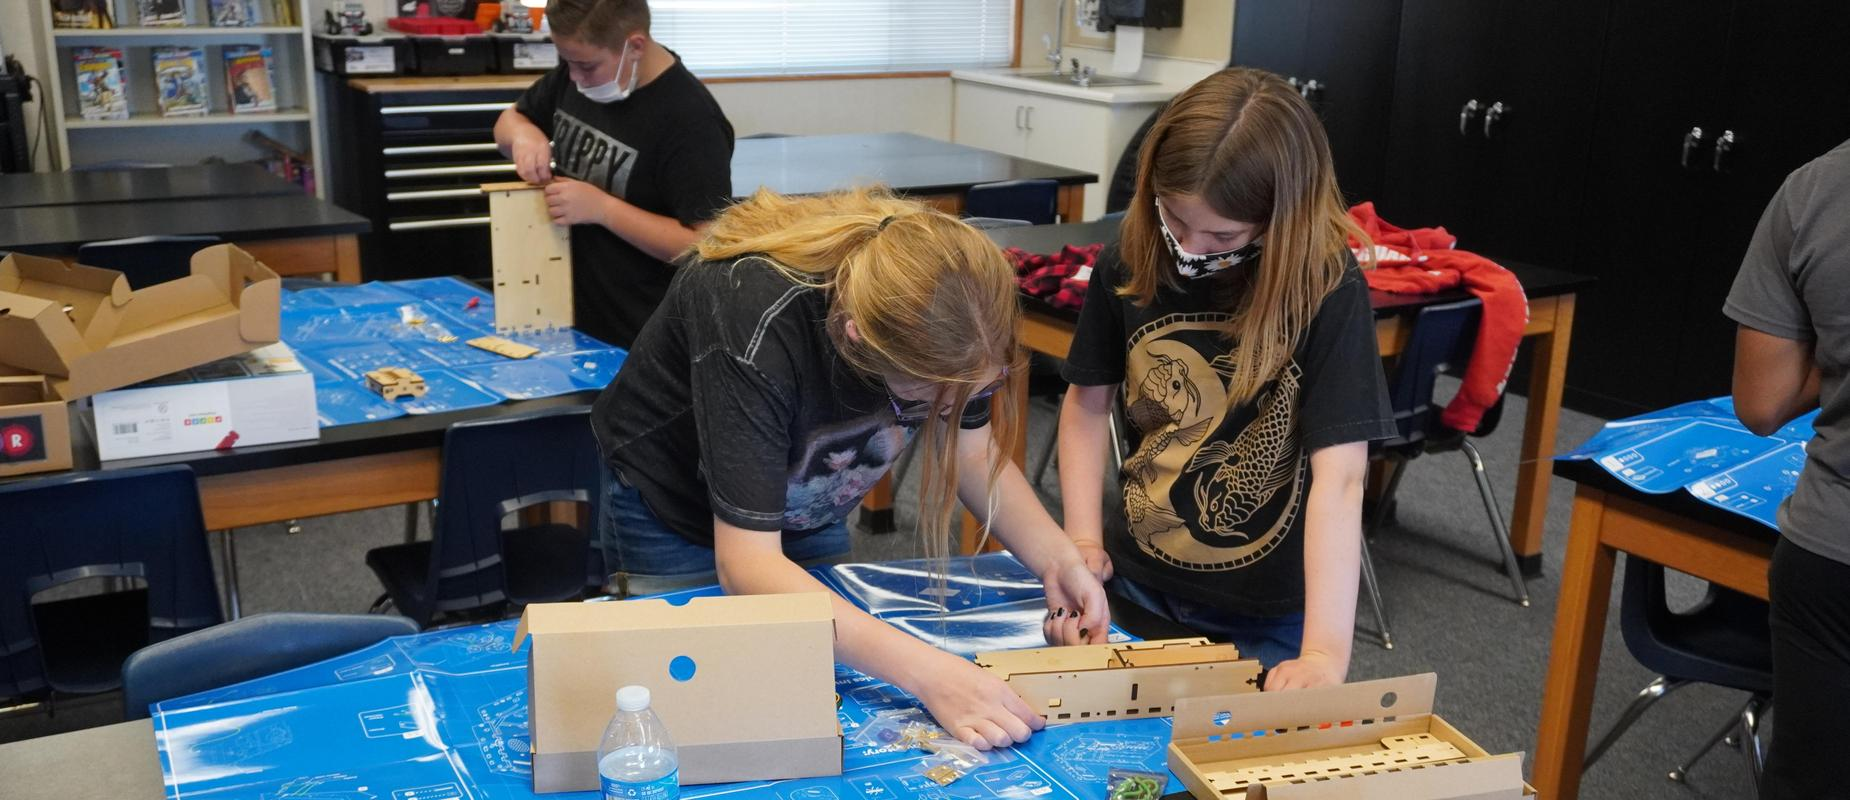 Image of students in STEM class.